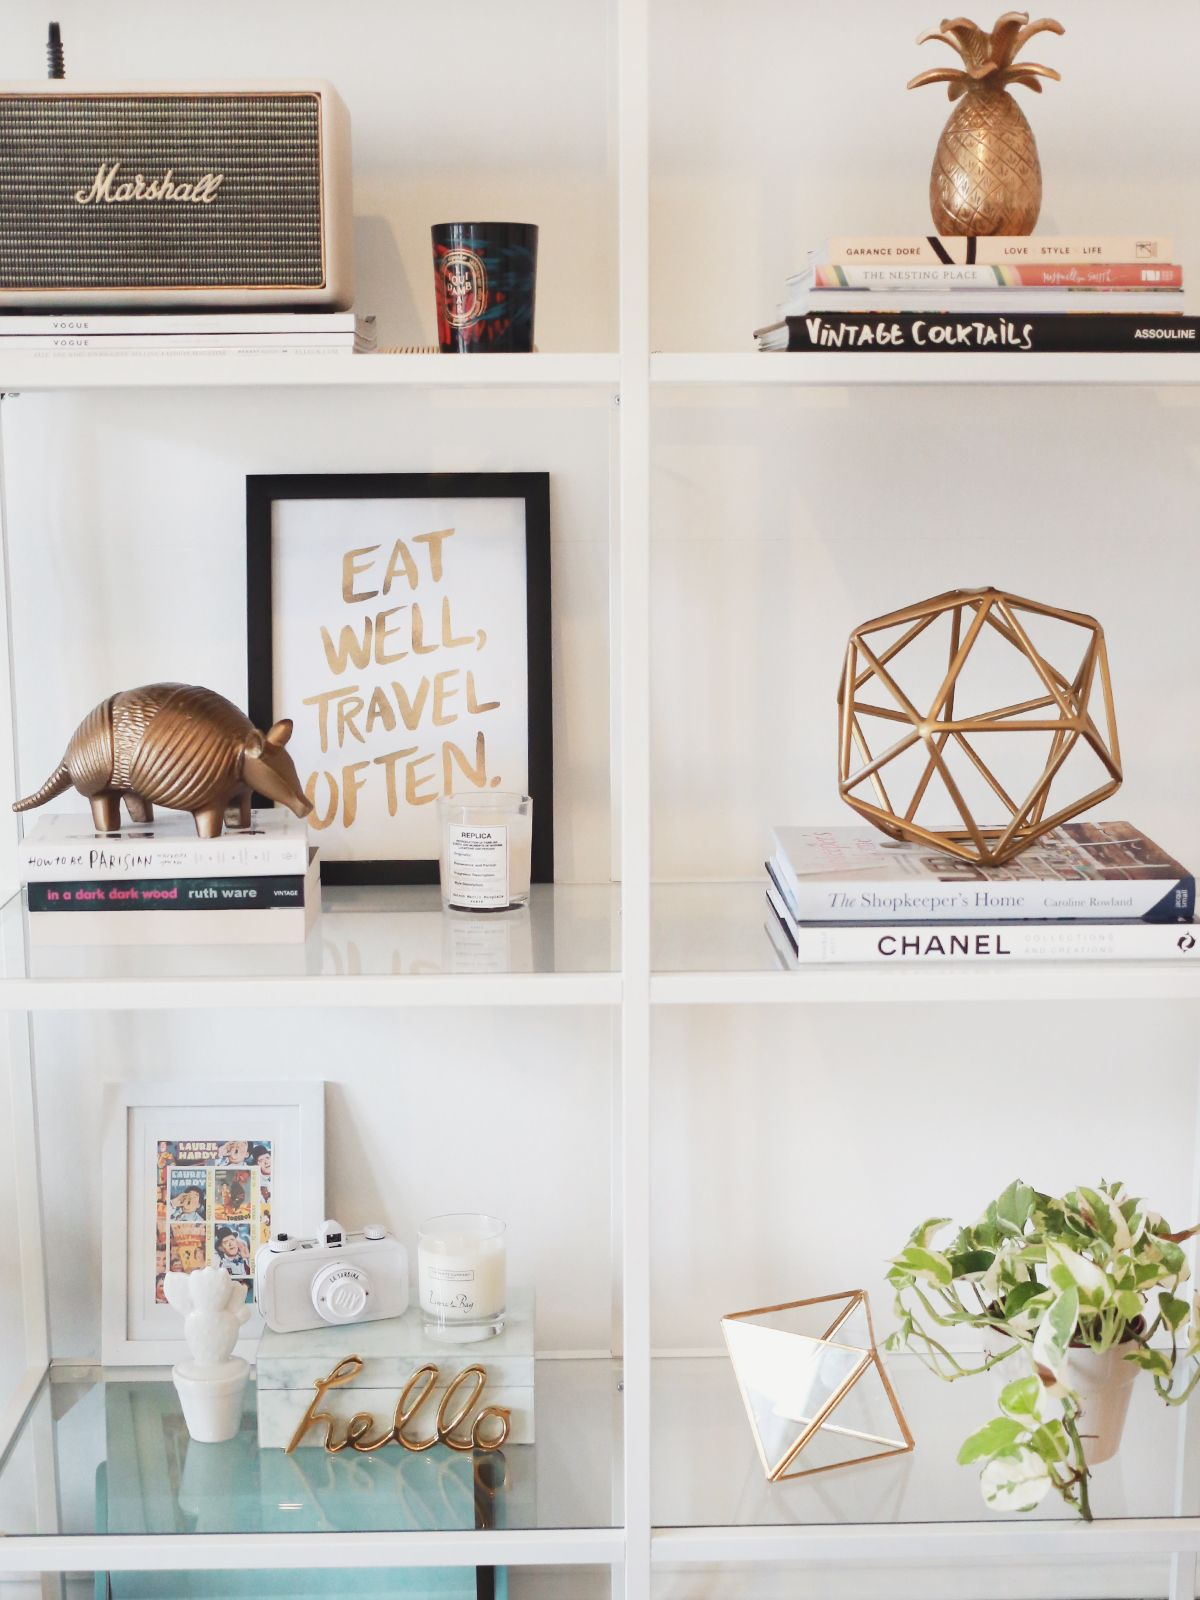 Sunday usually means an interiors post from me, and so I had to introduce my sexy new shelves to you all. We had a blank space (baby) behind the sofa, and we decided on some simple white shelves to fi